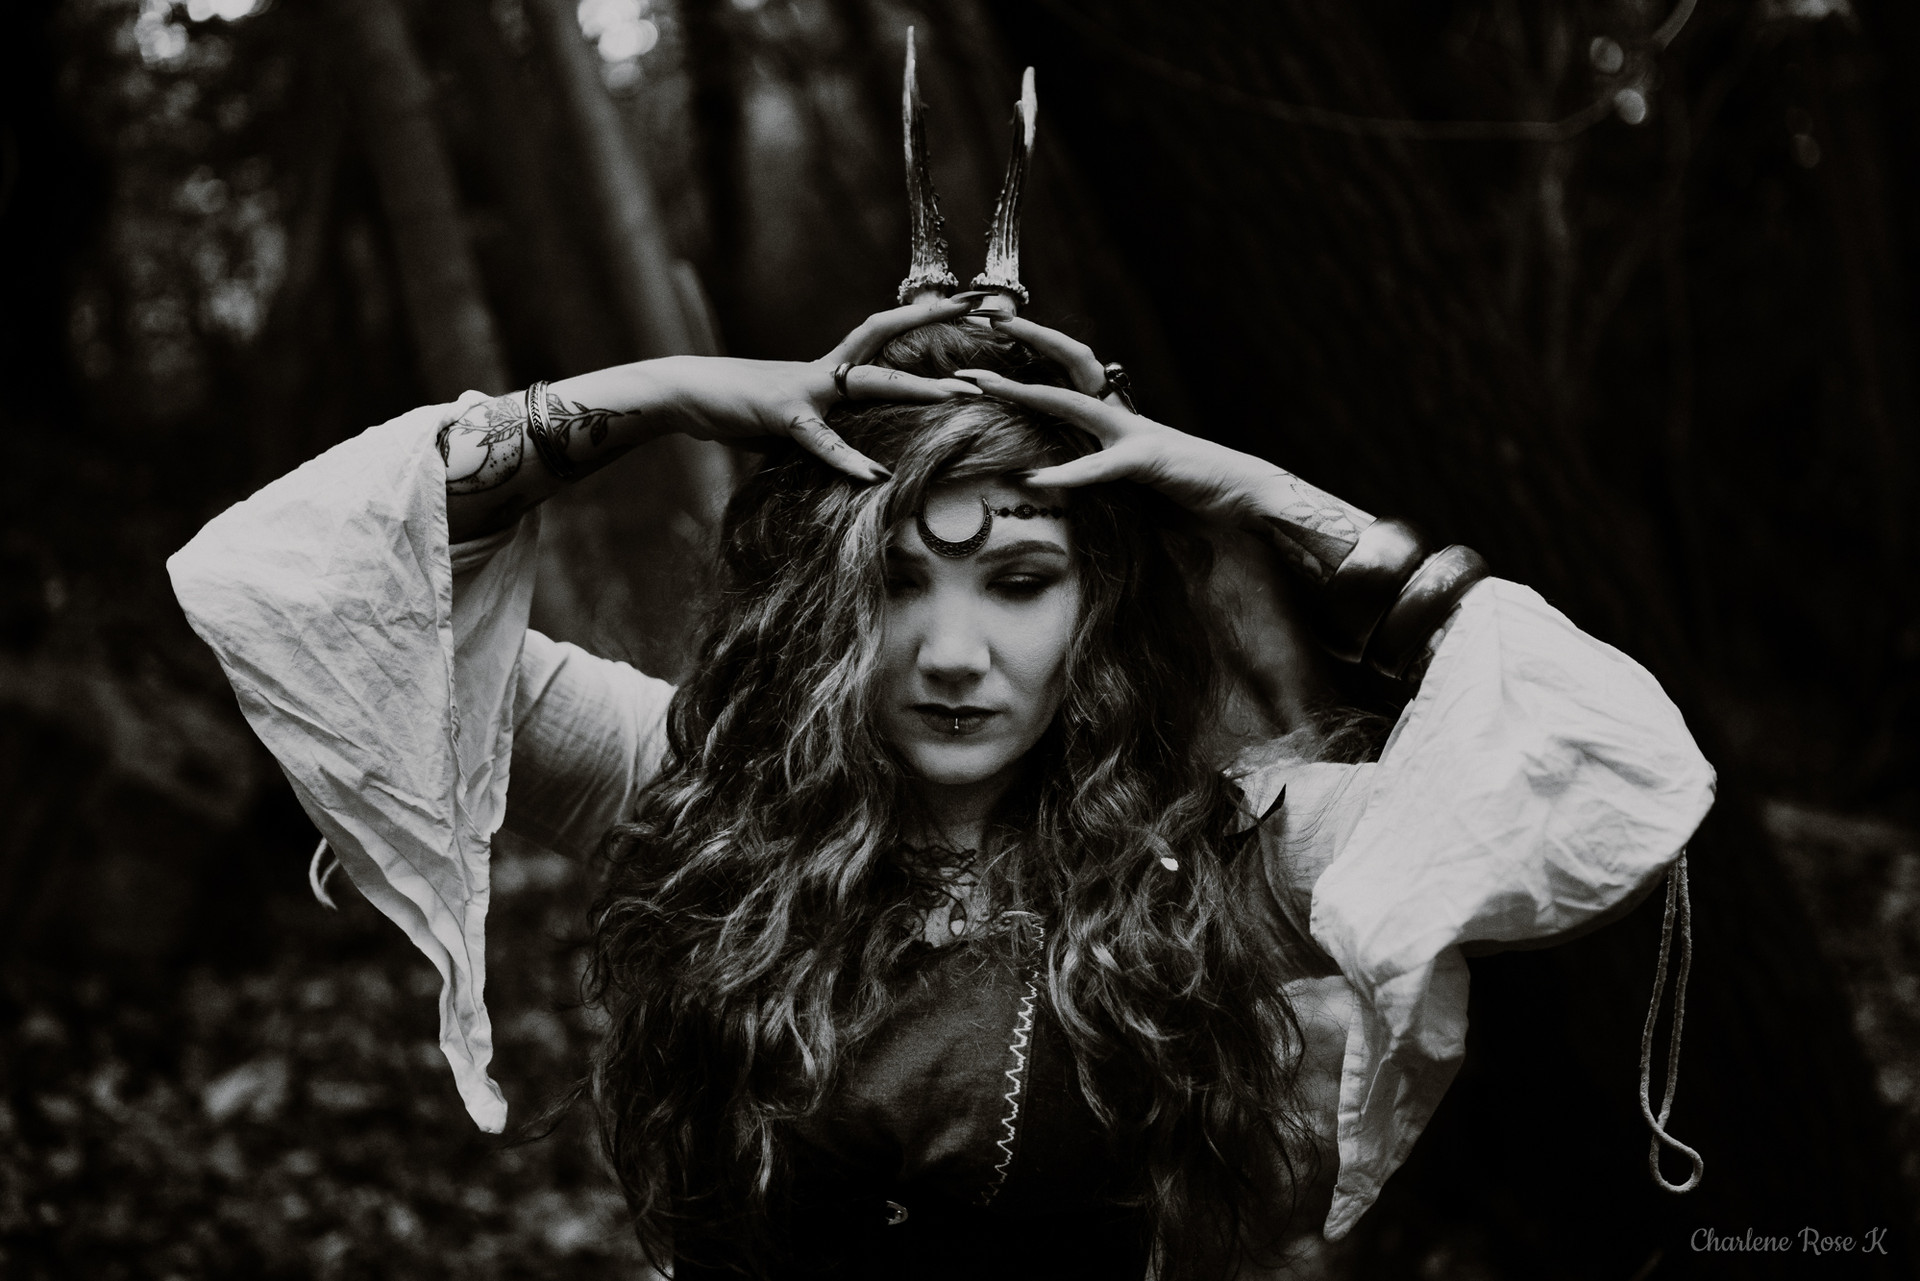 seance-photo-troyes-solo-femme-exterieur-witchy-crk-9